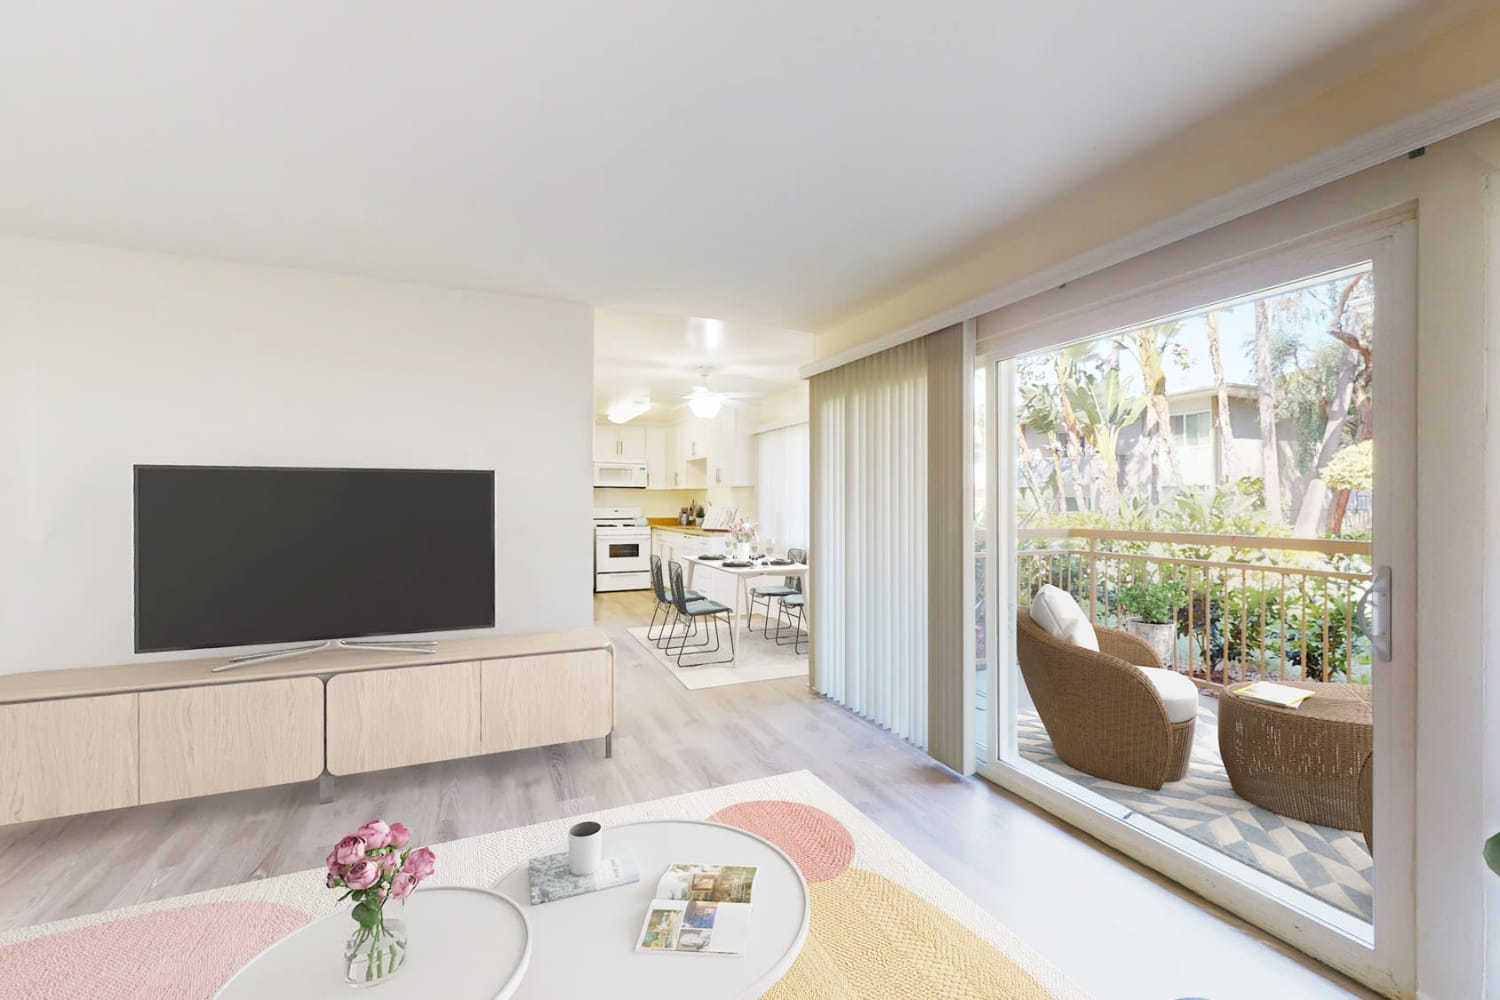 Two bedroom home's living space with floor-to-ceiling windows at West Park Village in Los Angeles, California